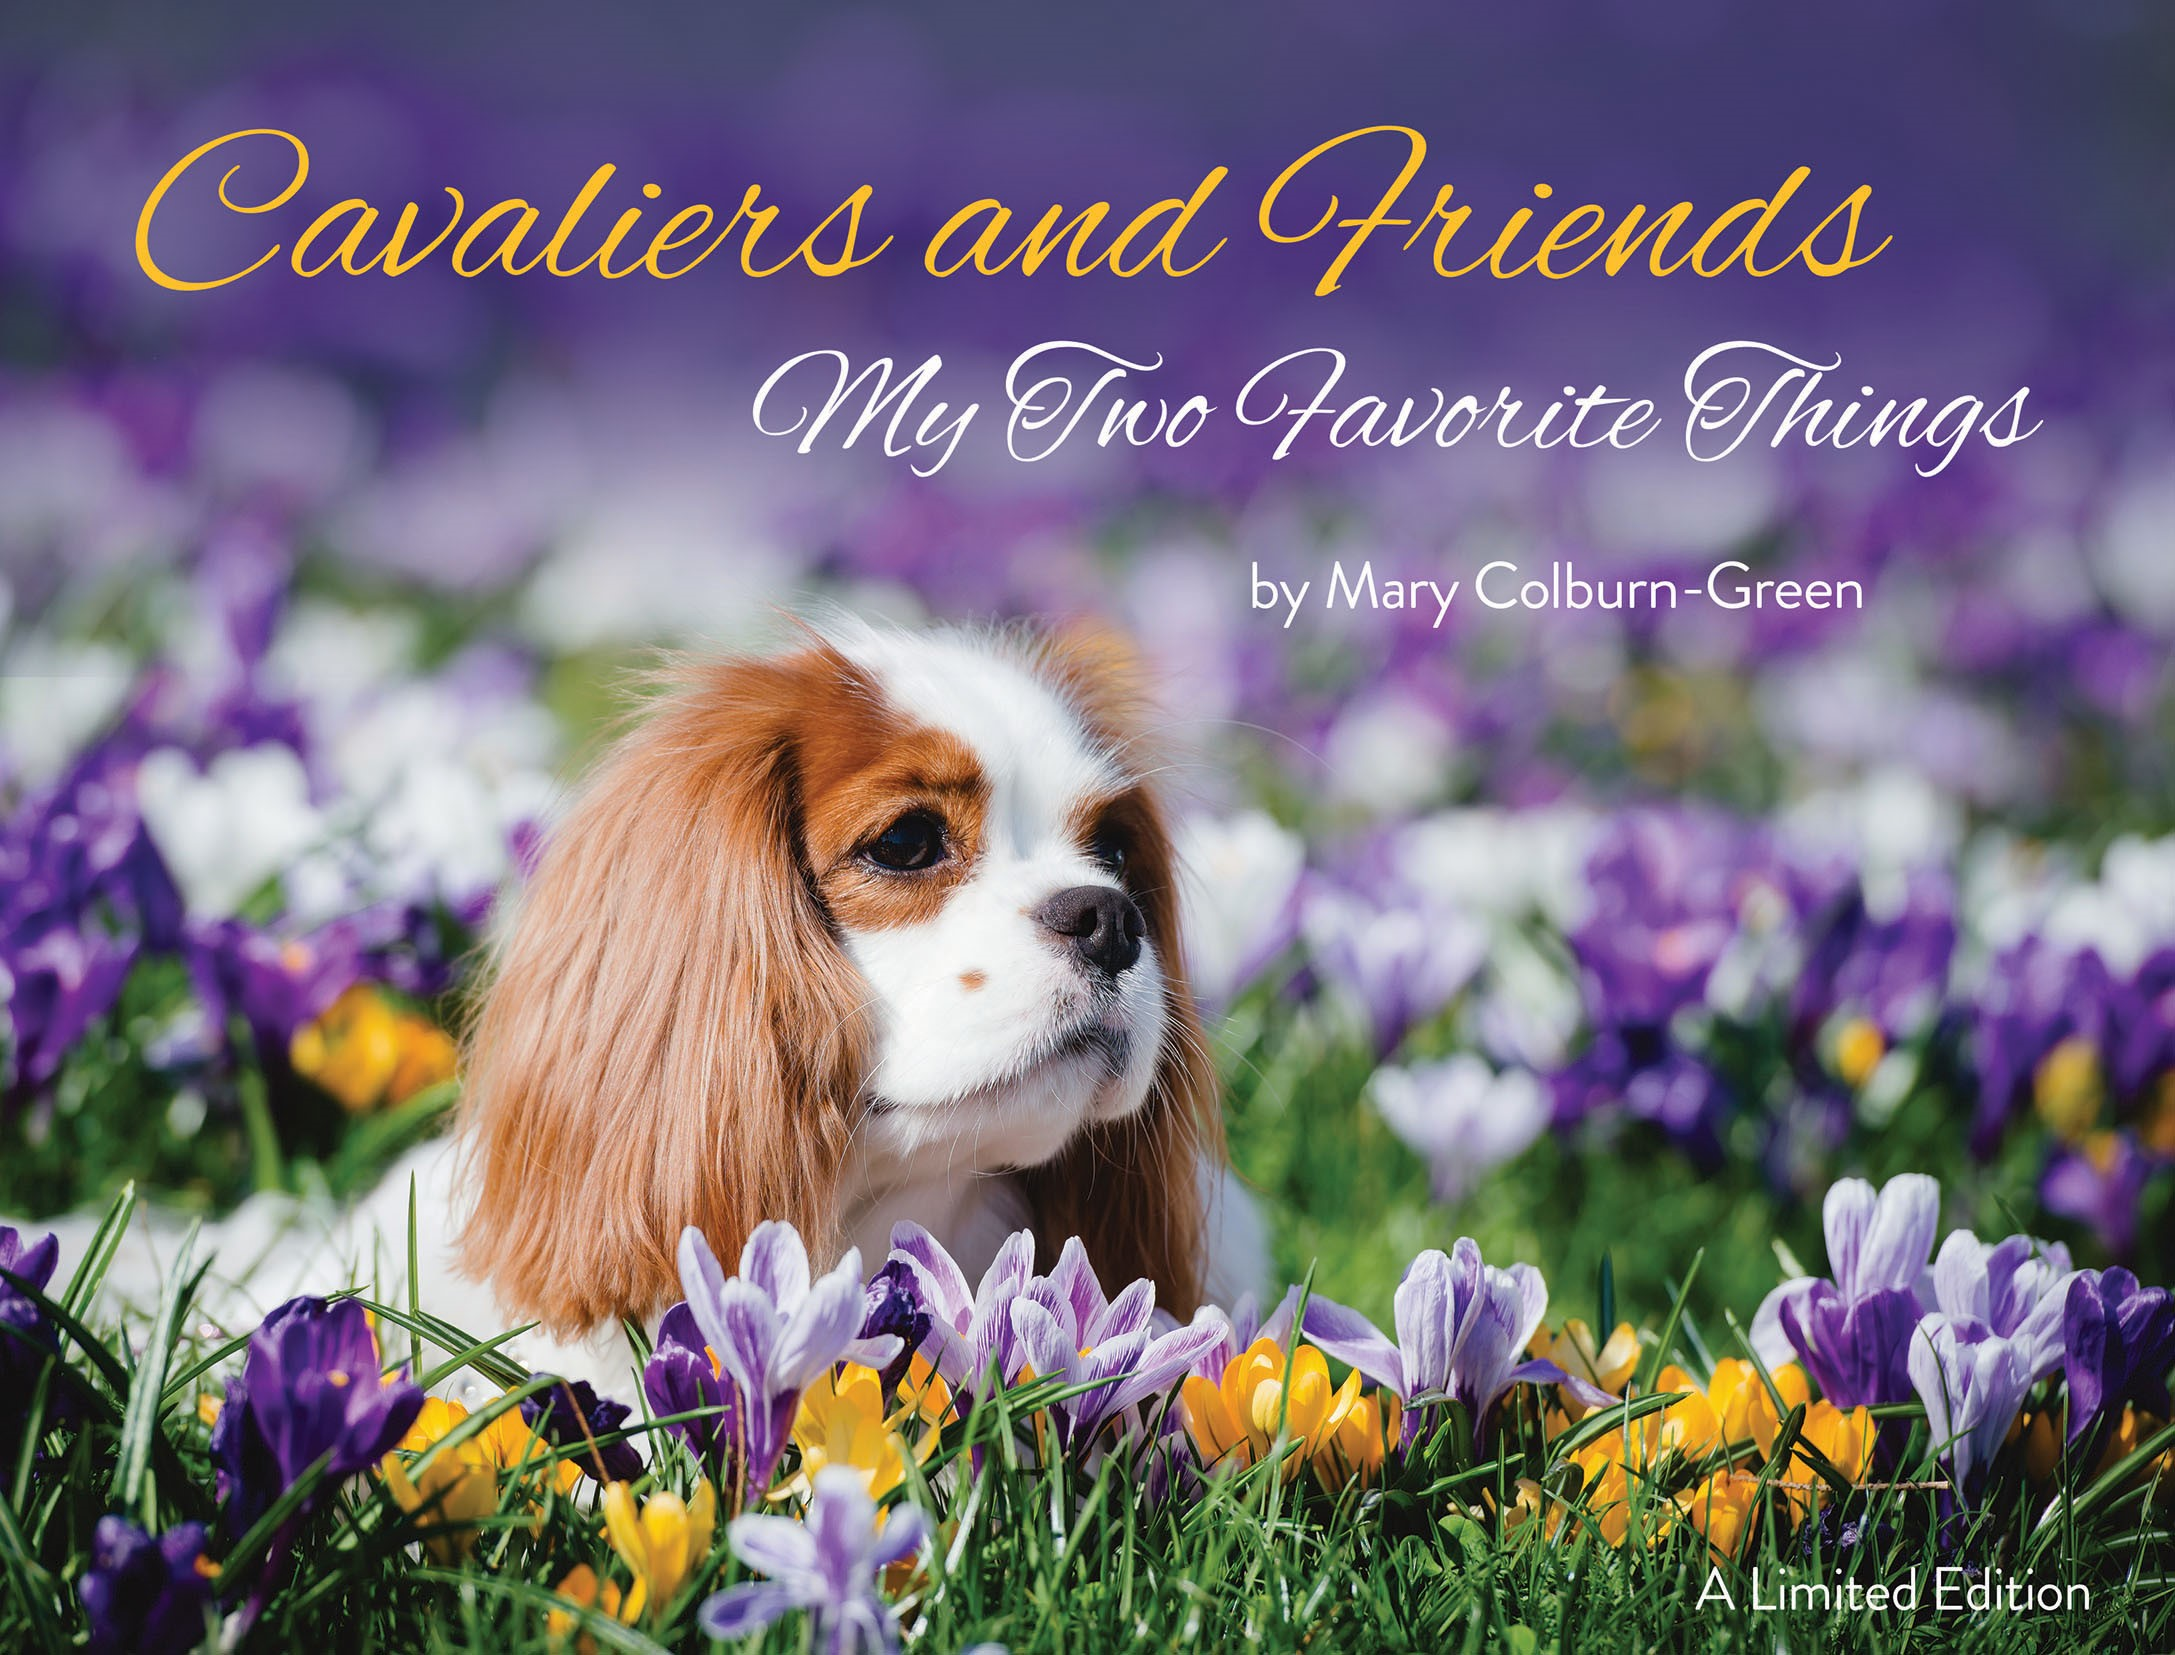 Cavalier, friends, dogs, Mary, Gree, Colburn. coffee table, book, rescue, puppies, kids, pets, kennek, country, australia, japan, us, uk, books cavaliers colburn dogs facebook FB Green mary pictures puppies show dogs spaniel Europe photos friends share pics Cavs ACKCS rescue dog rescue cavalier rescue coffee table gift book